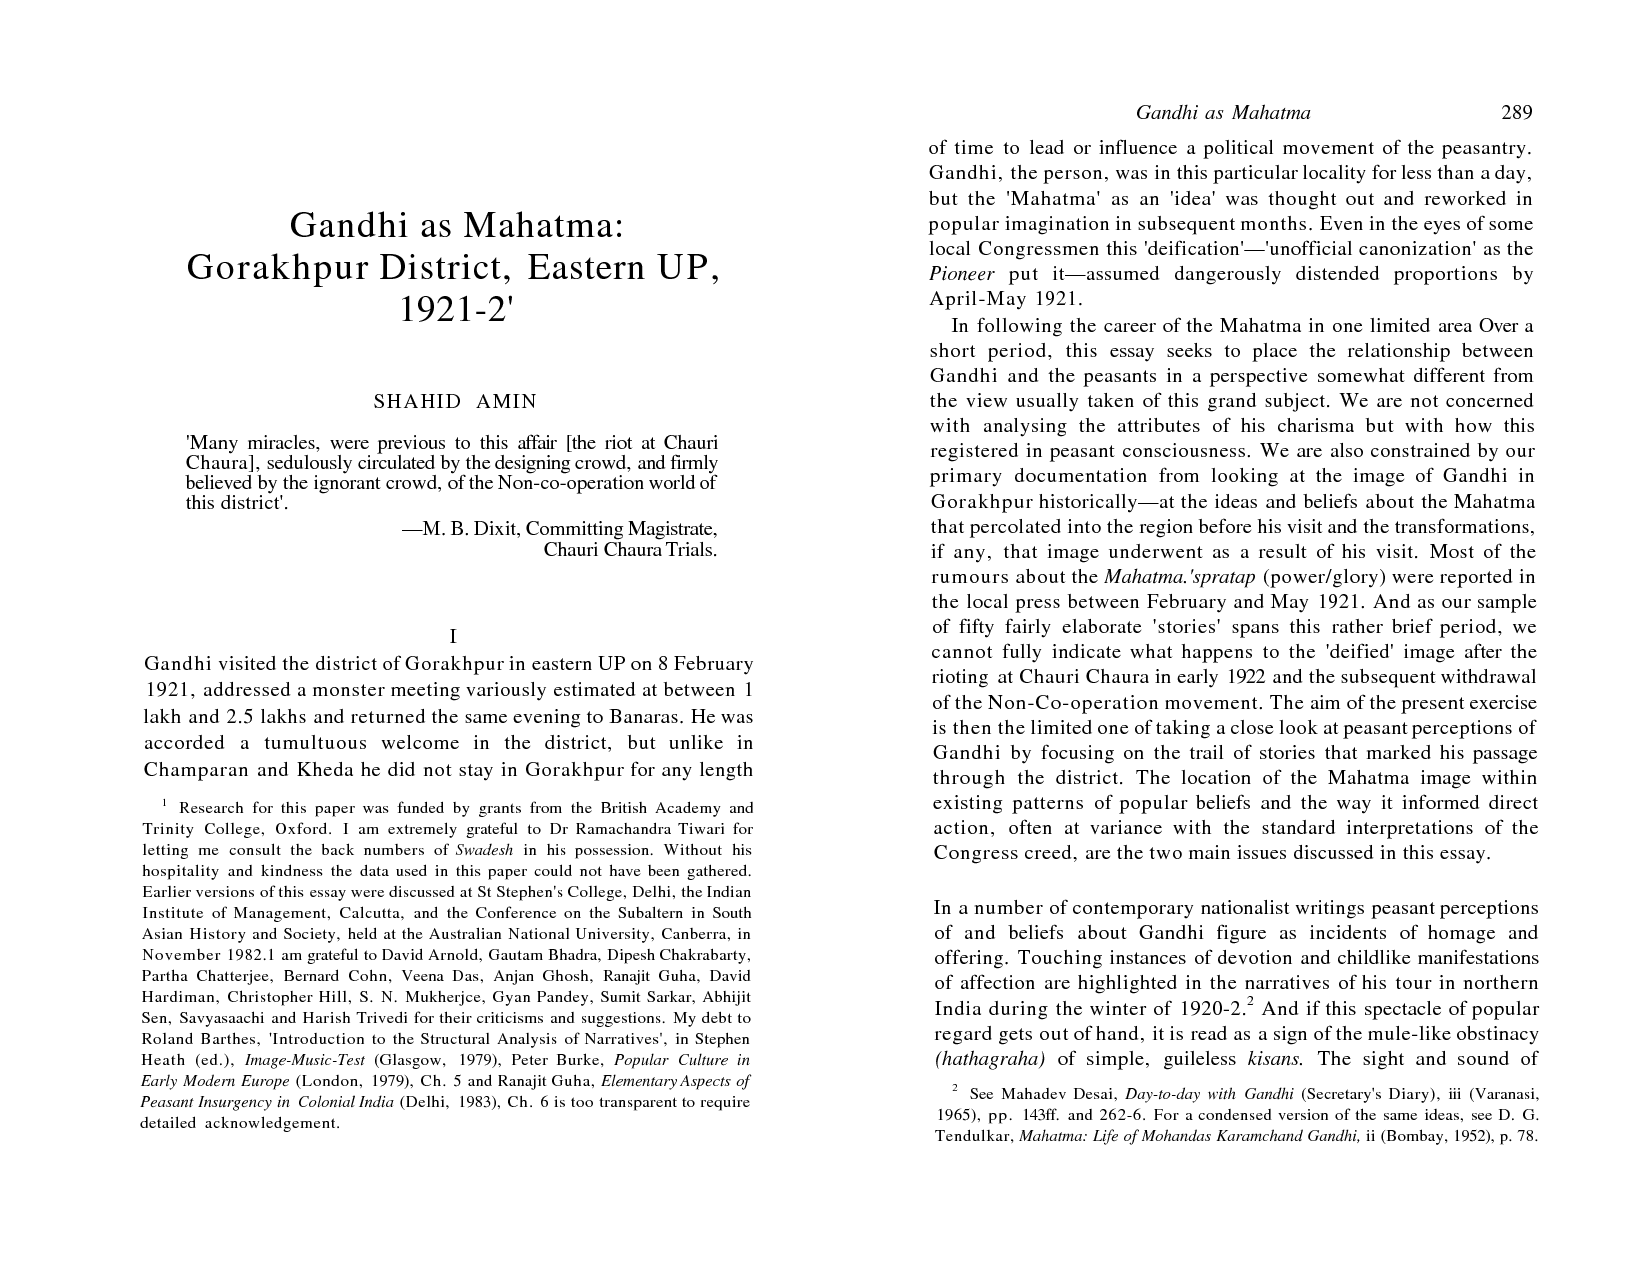 Essay on help mahatma gandhi in hindi in short